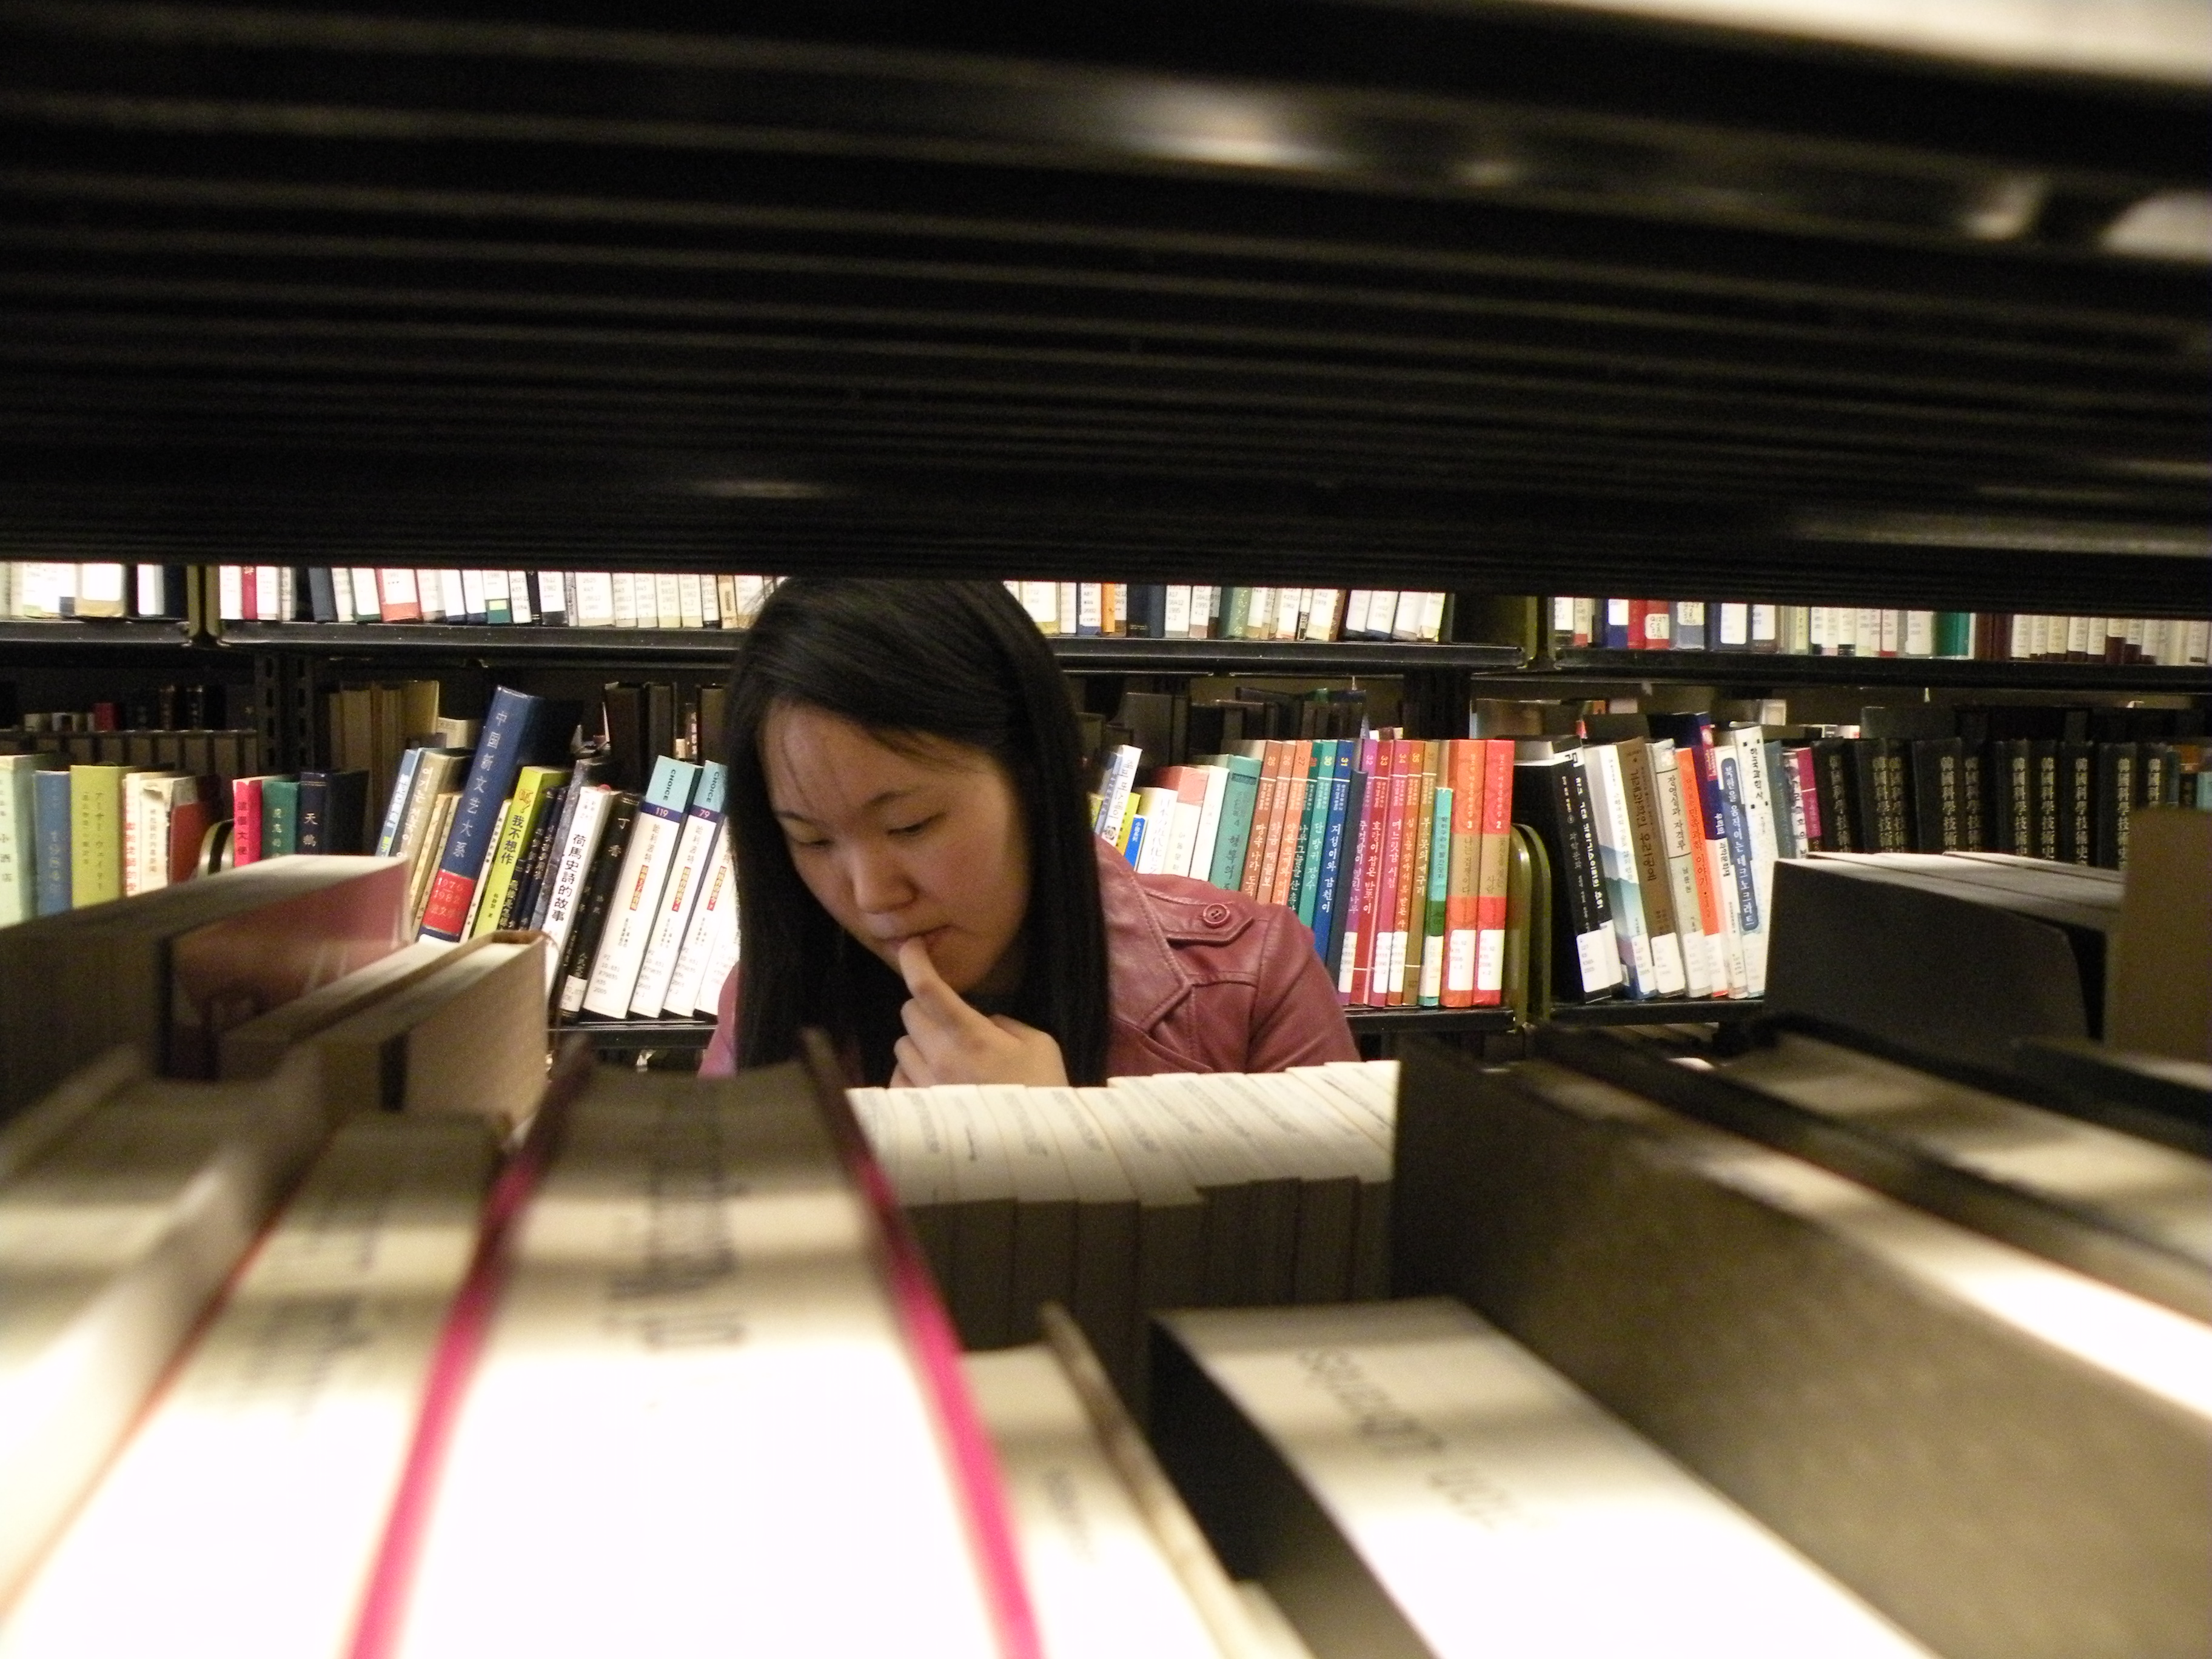 Woman standing in stacks